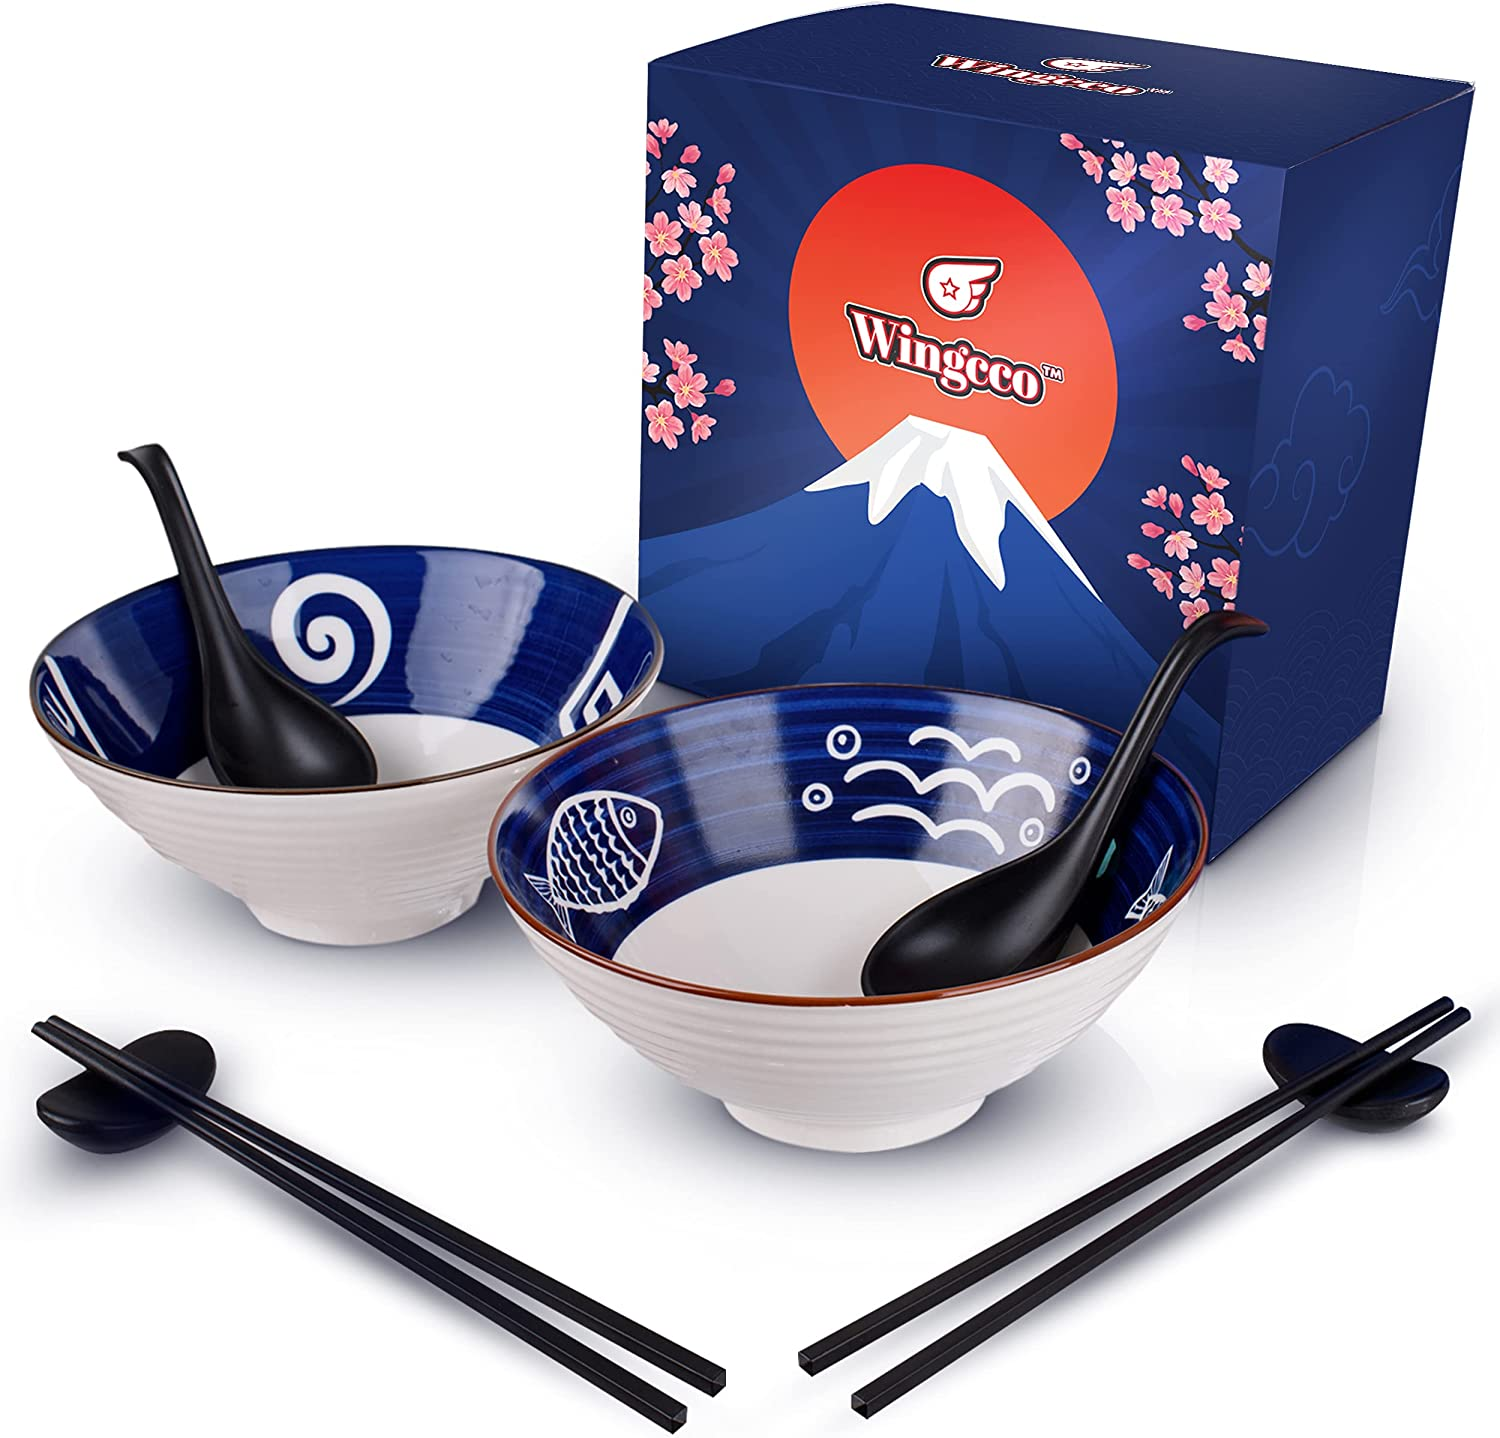 Wingcco New mail order Japanese Ceramic Ramen Bowl 8-Piece Max 58% OFF Match - Set With